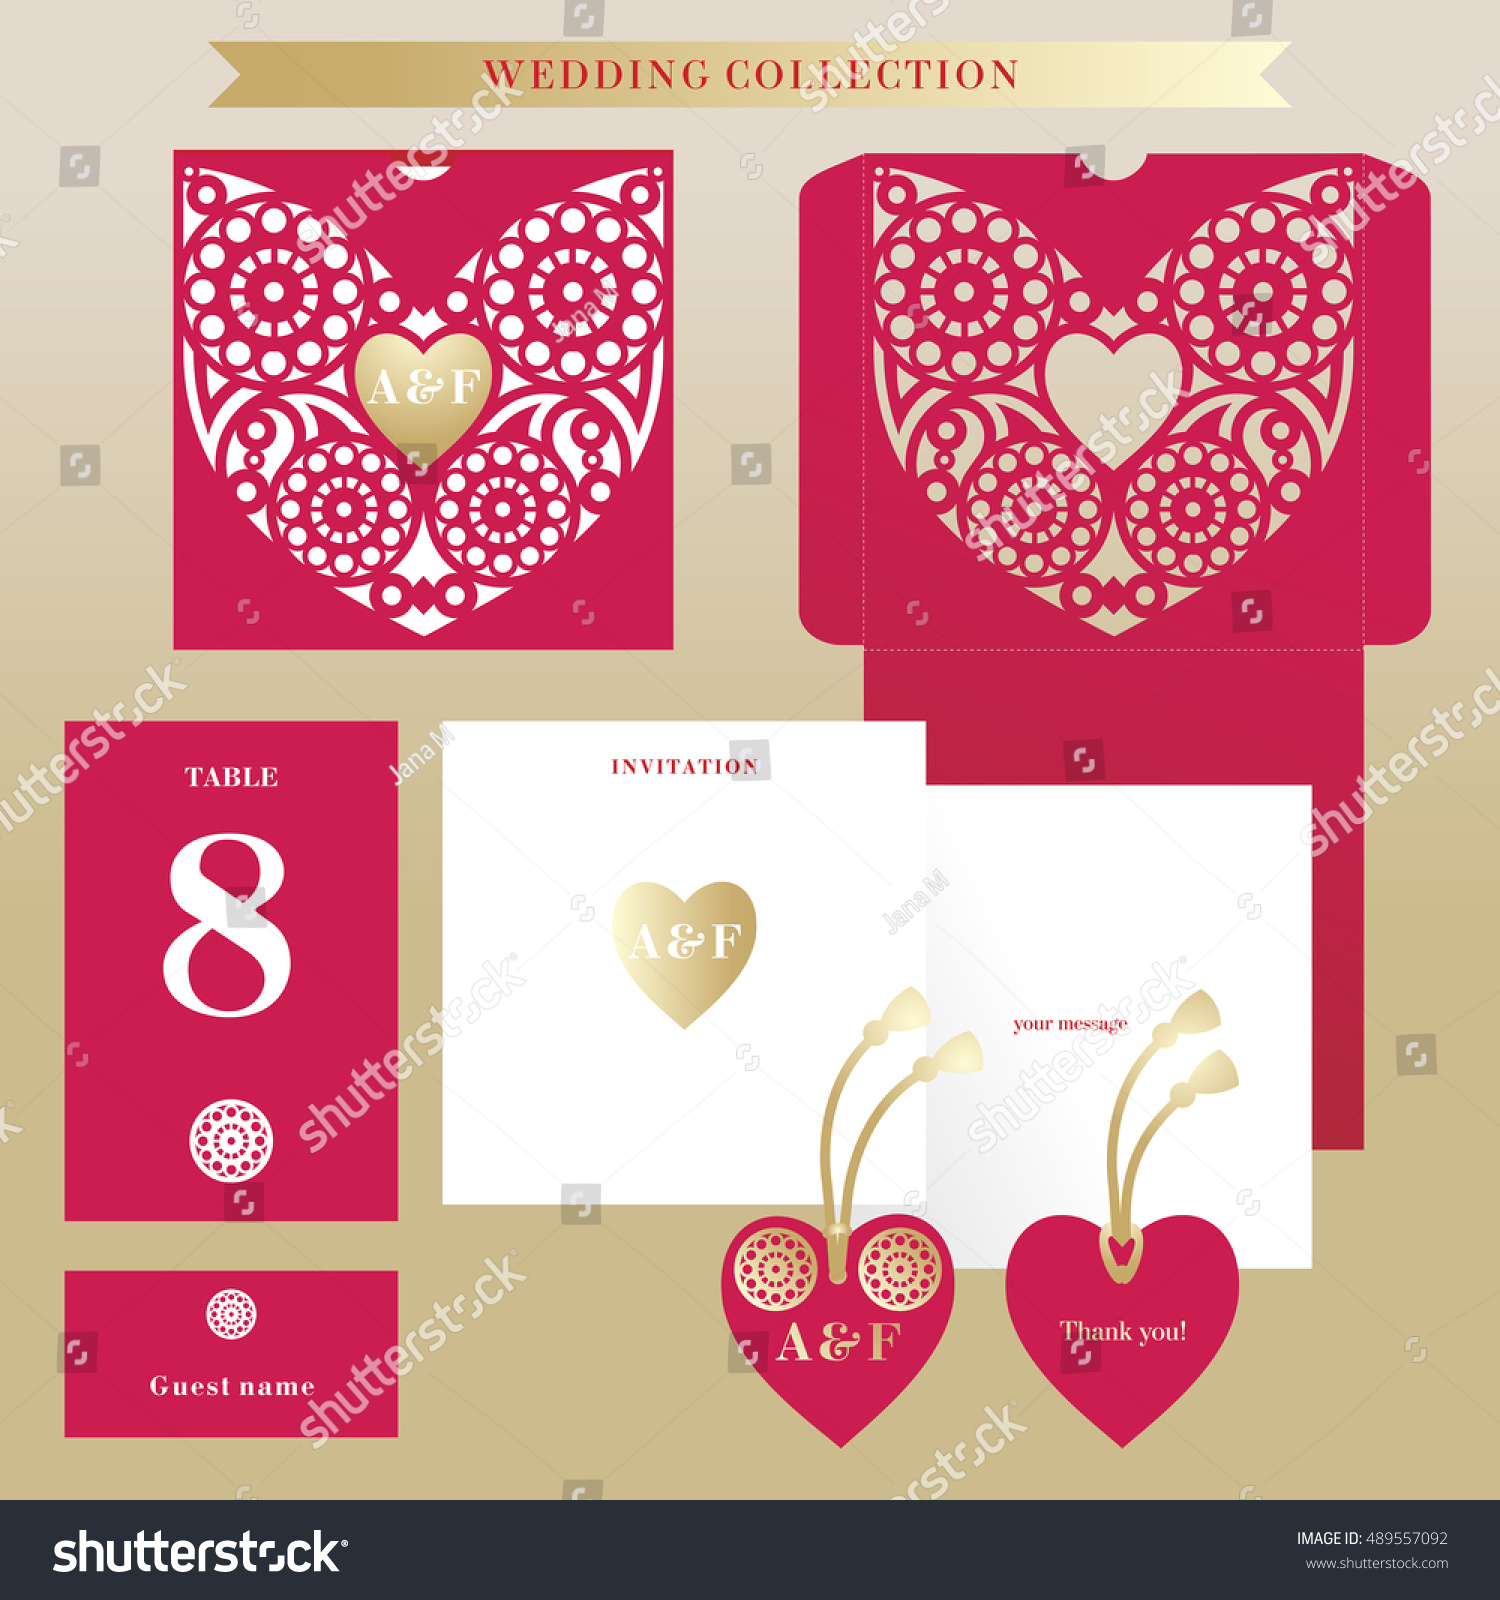 Wedding Collection Red Lace Heart Golden Stock Vector (Royalty Free ...